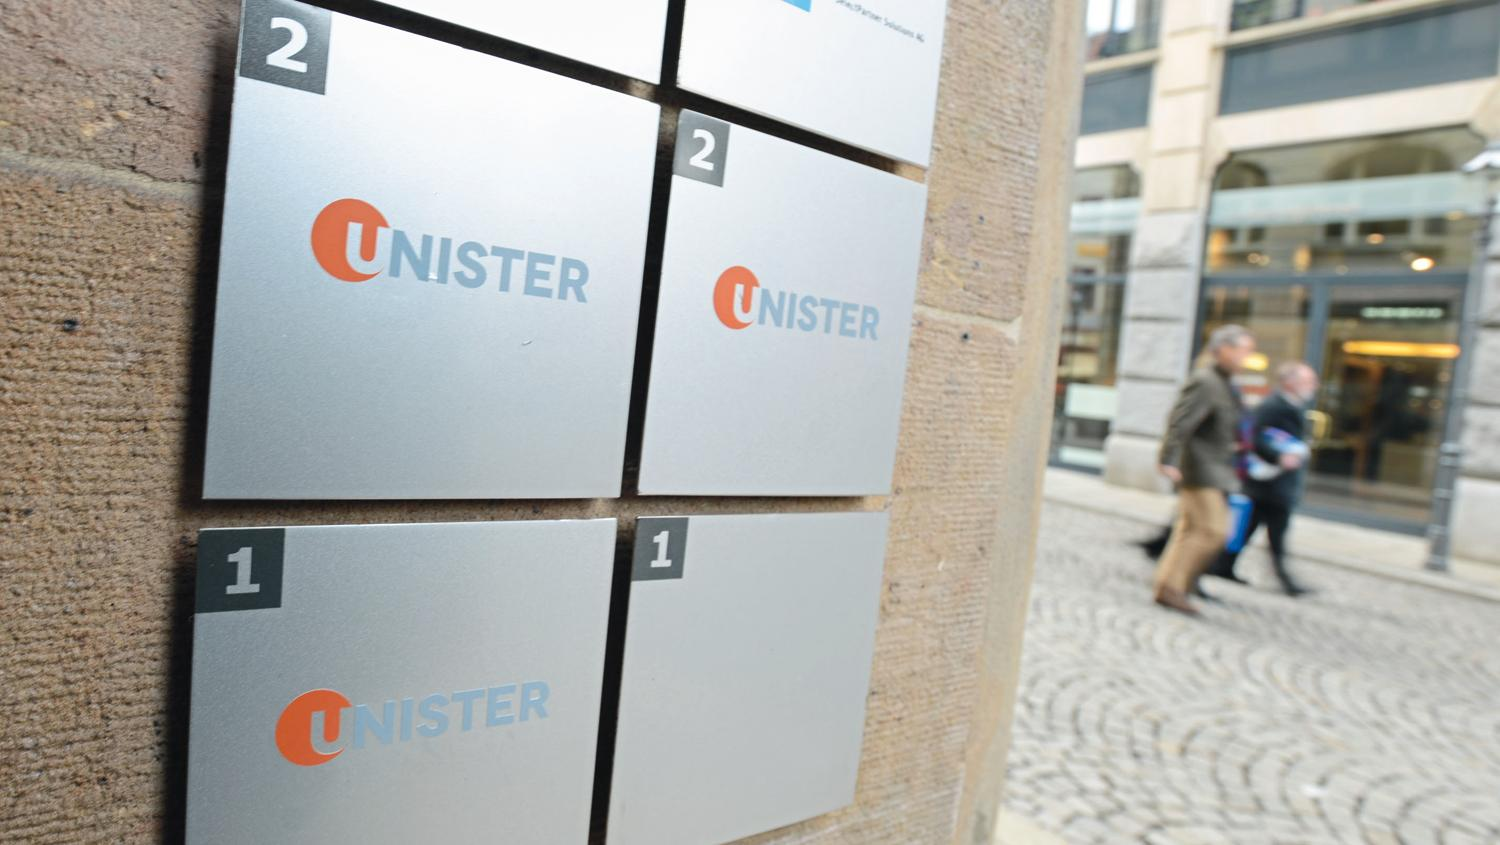 Unister filed for insolvency last year.